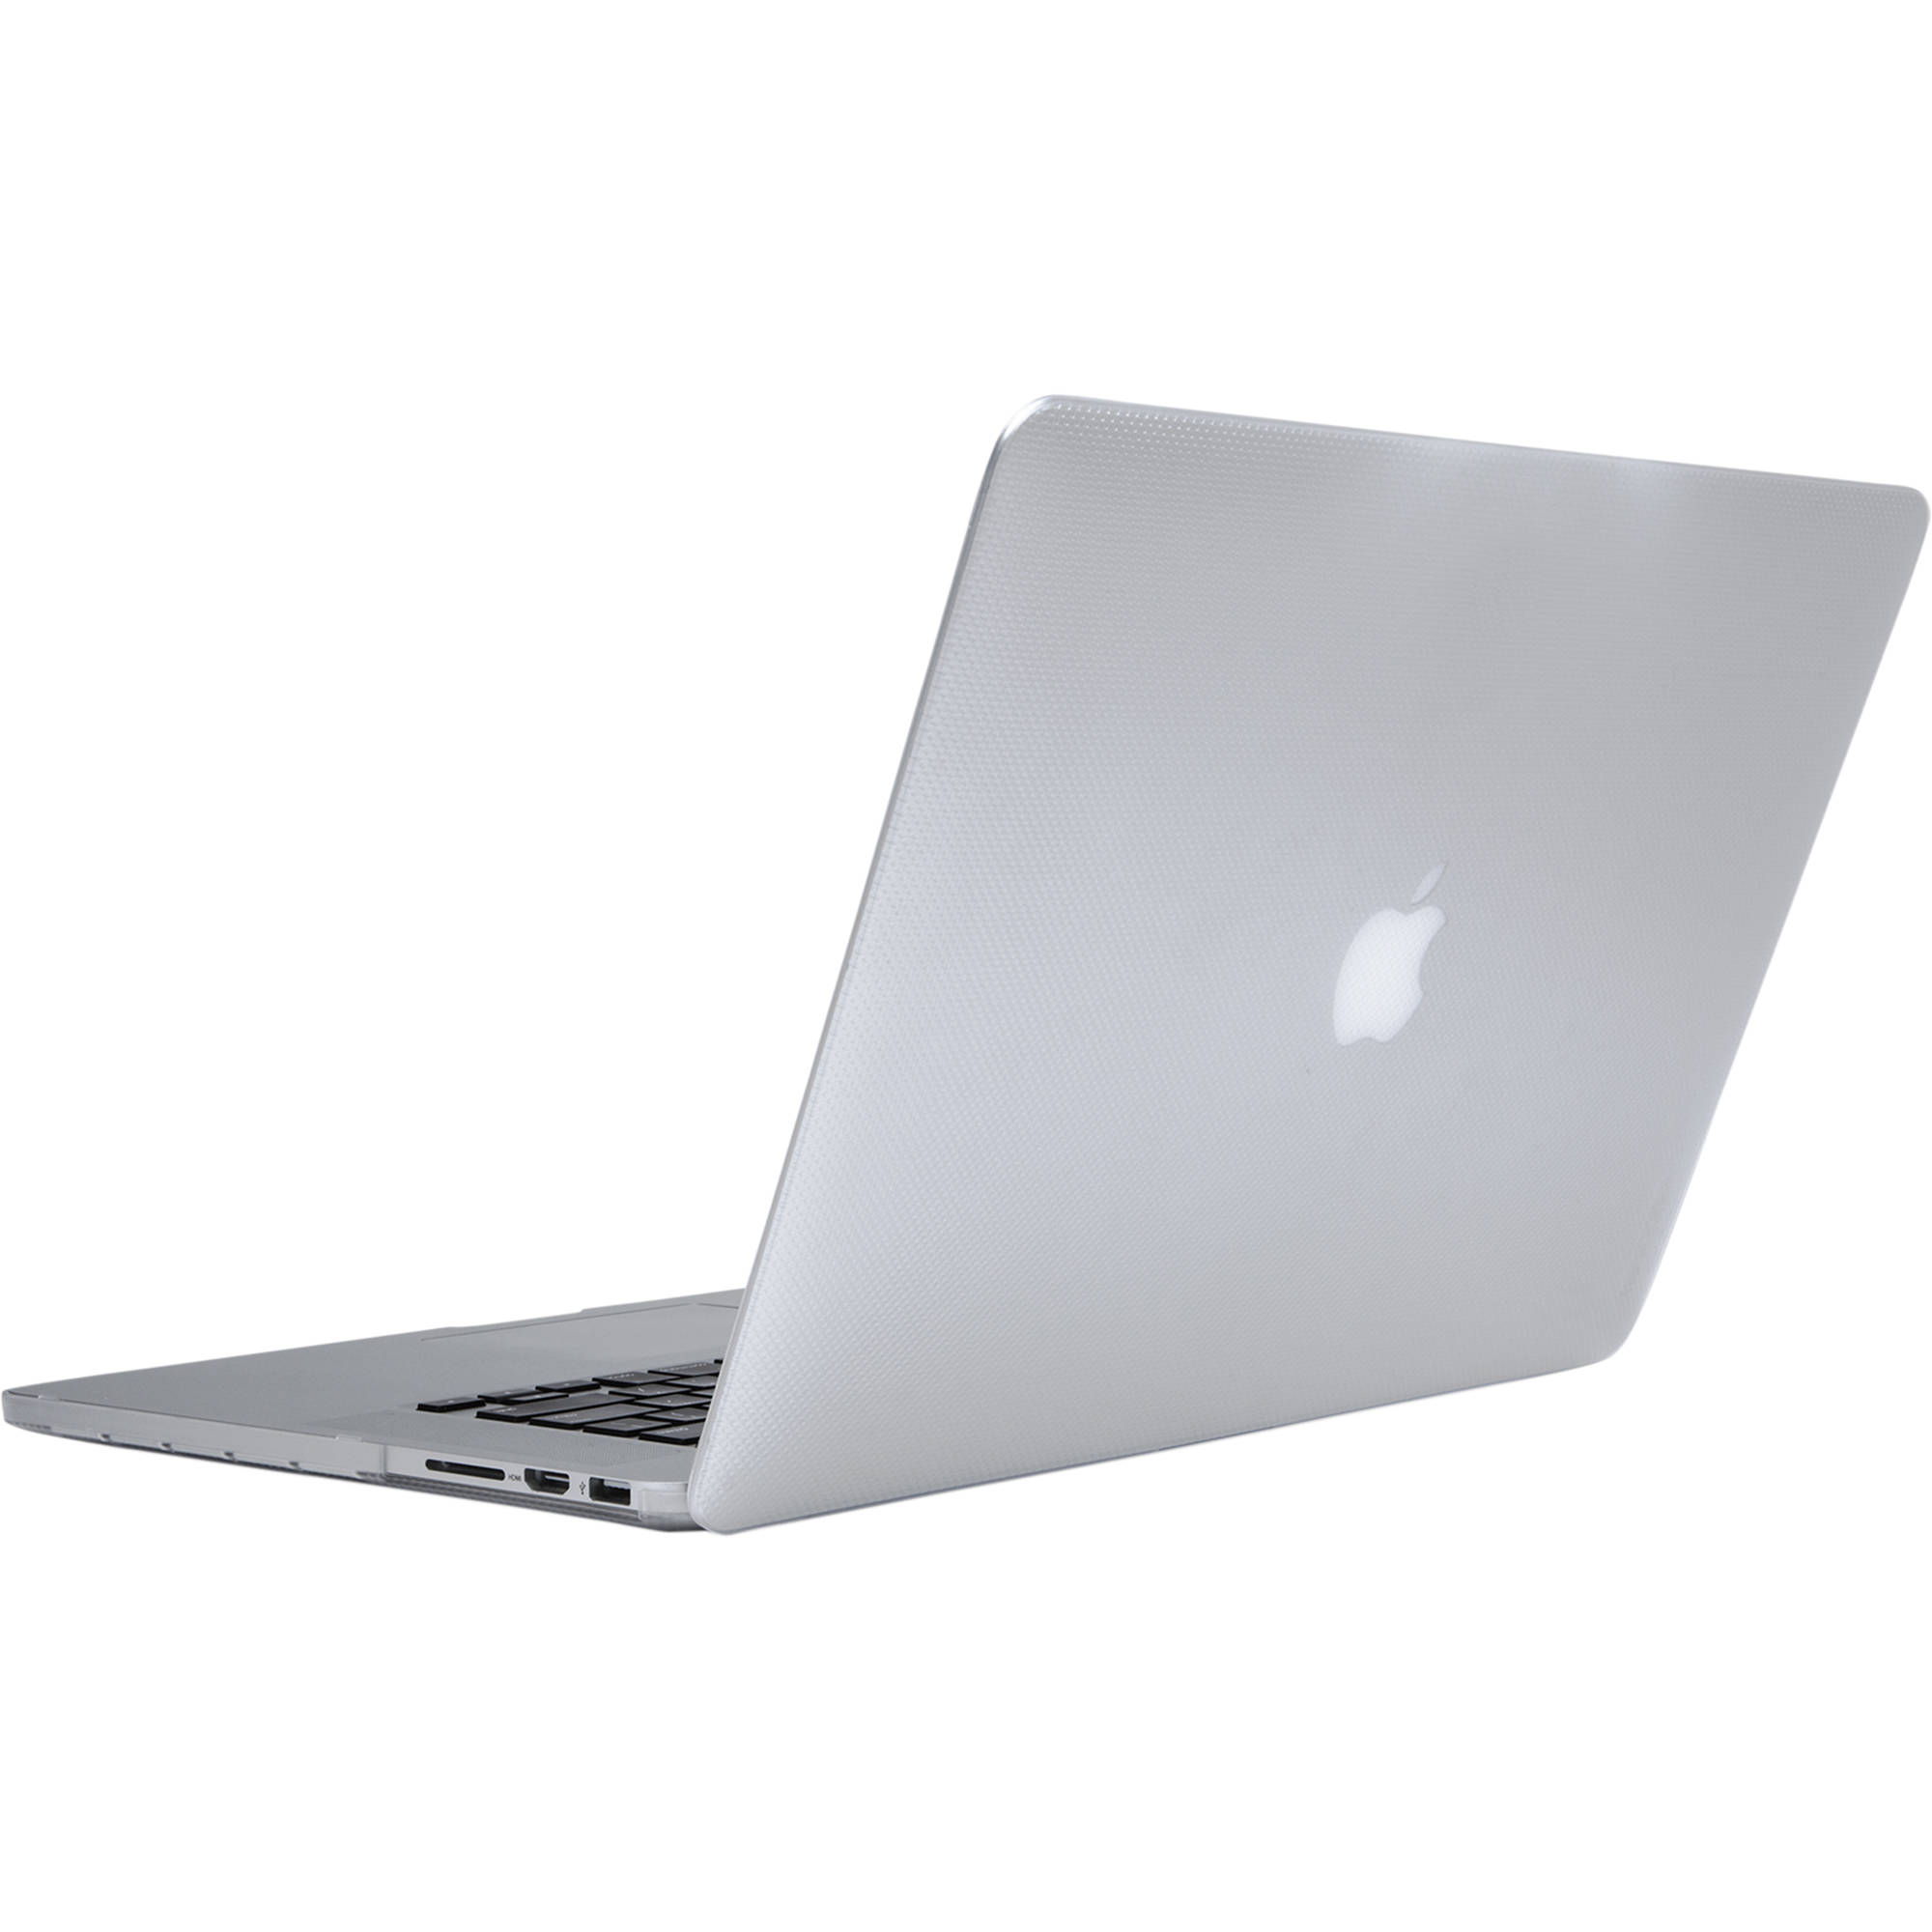 online store 41279 326bc Incase Designs Corp Hard-Shell Case for MacBook Pro Retina 15